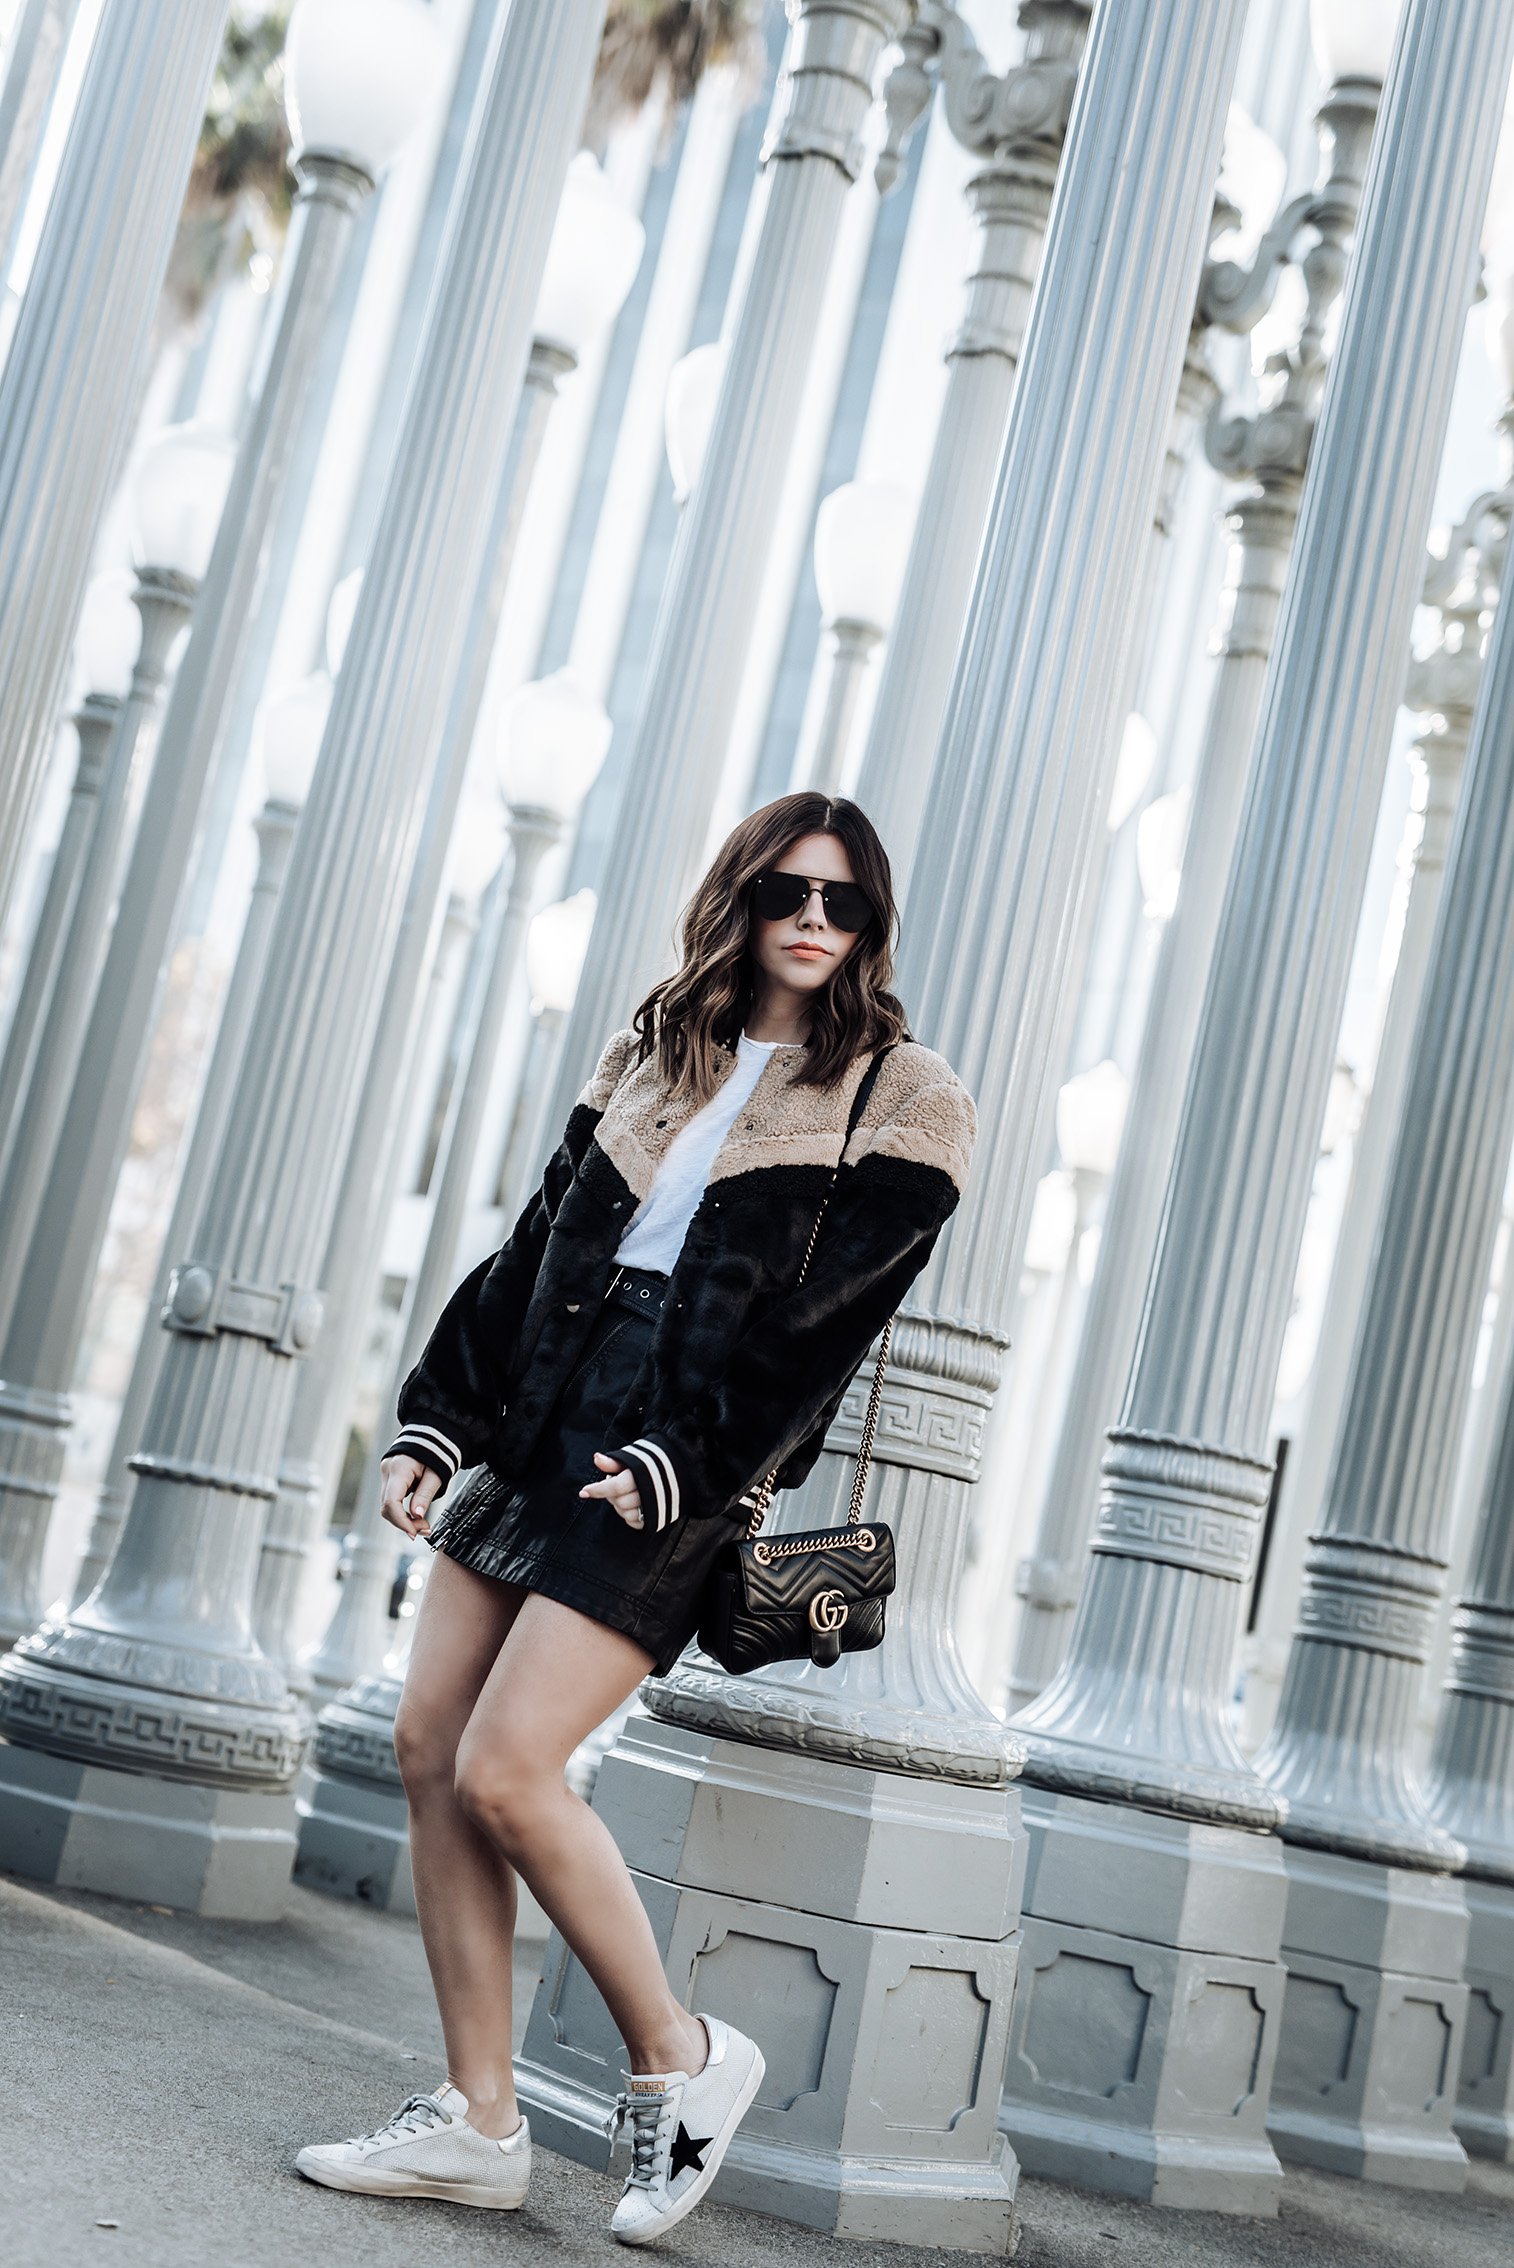 Faux fur bomber (Lord & Taylor) | Free People Feeing Fresh vegan leather skirt | Golden Goose Superstar Sneakers | Gucci Bag | Faux fur bomber | skirt |